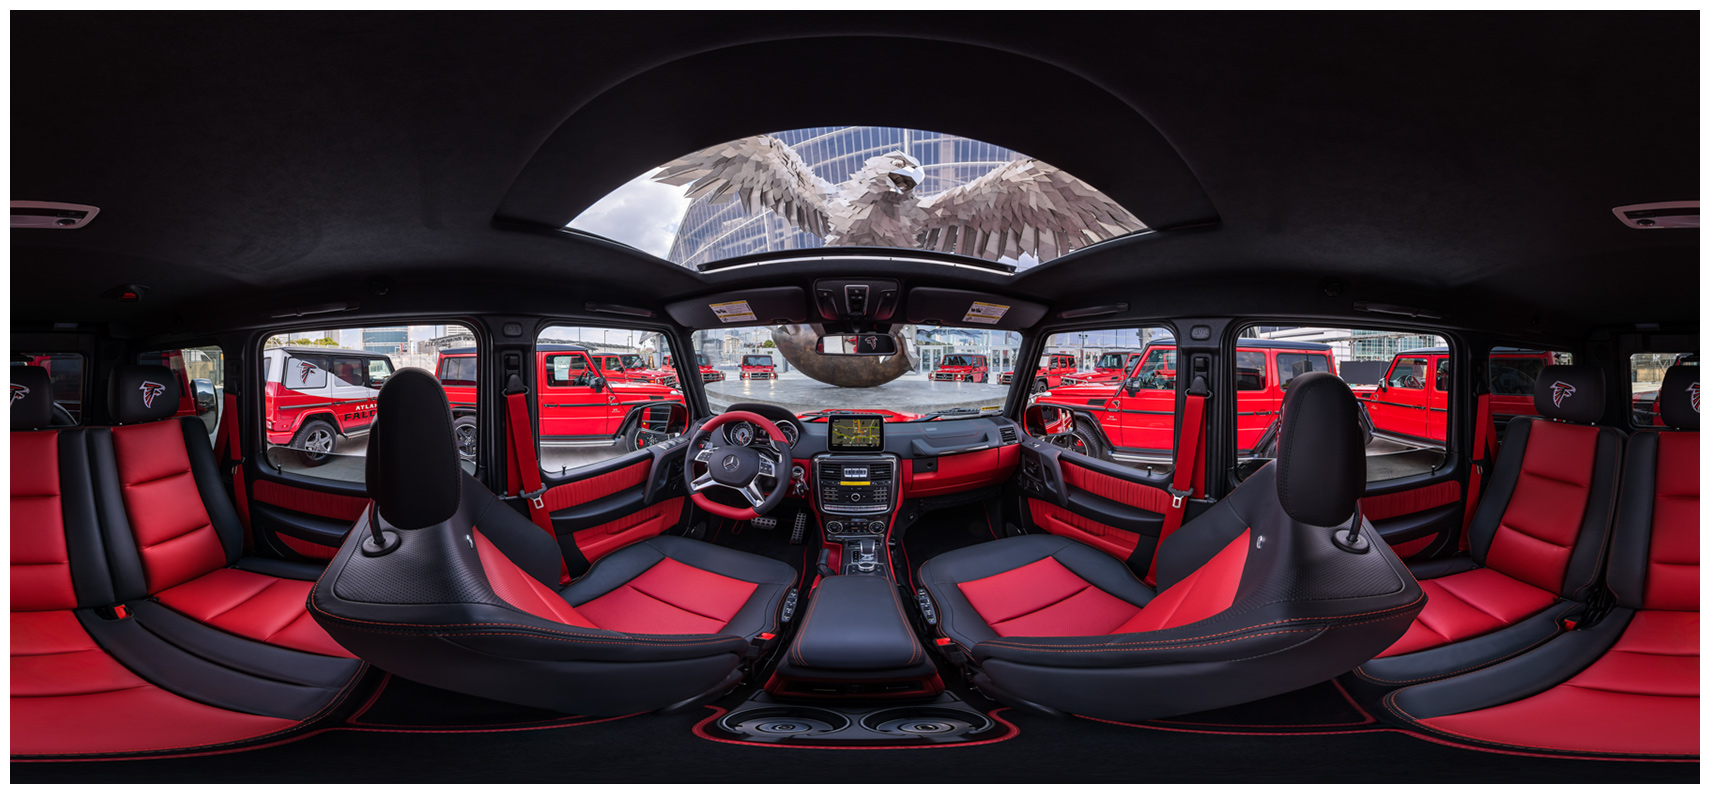 360 degree panoramic inside a falcon edition g63 amg underneath Gábor Miklós Szőke sculpture mercedes-benz stadium